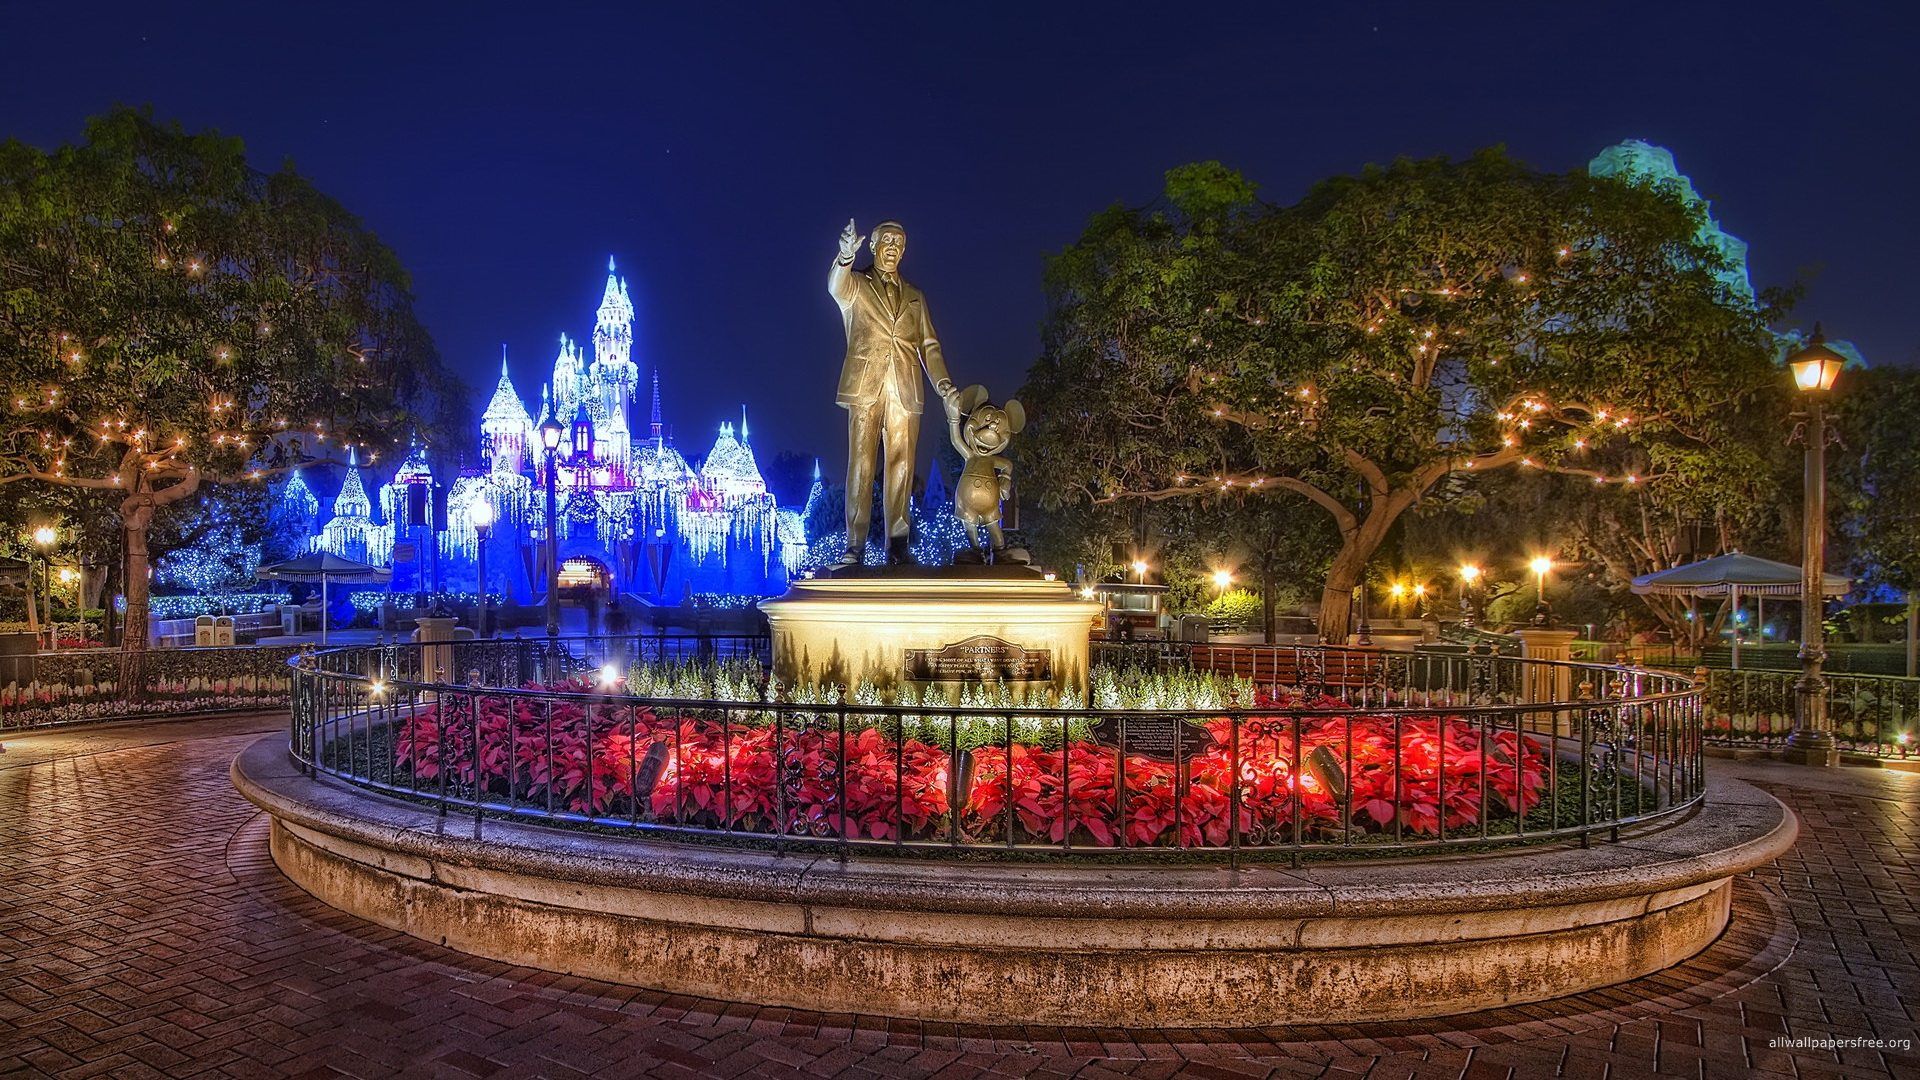 coinwp contentuploads201311disney world christmas wallpapersjpg 1920x1080